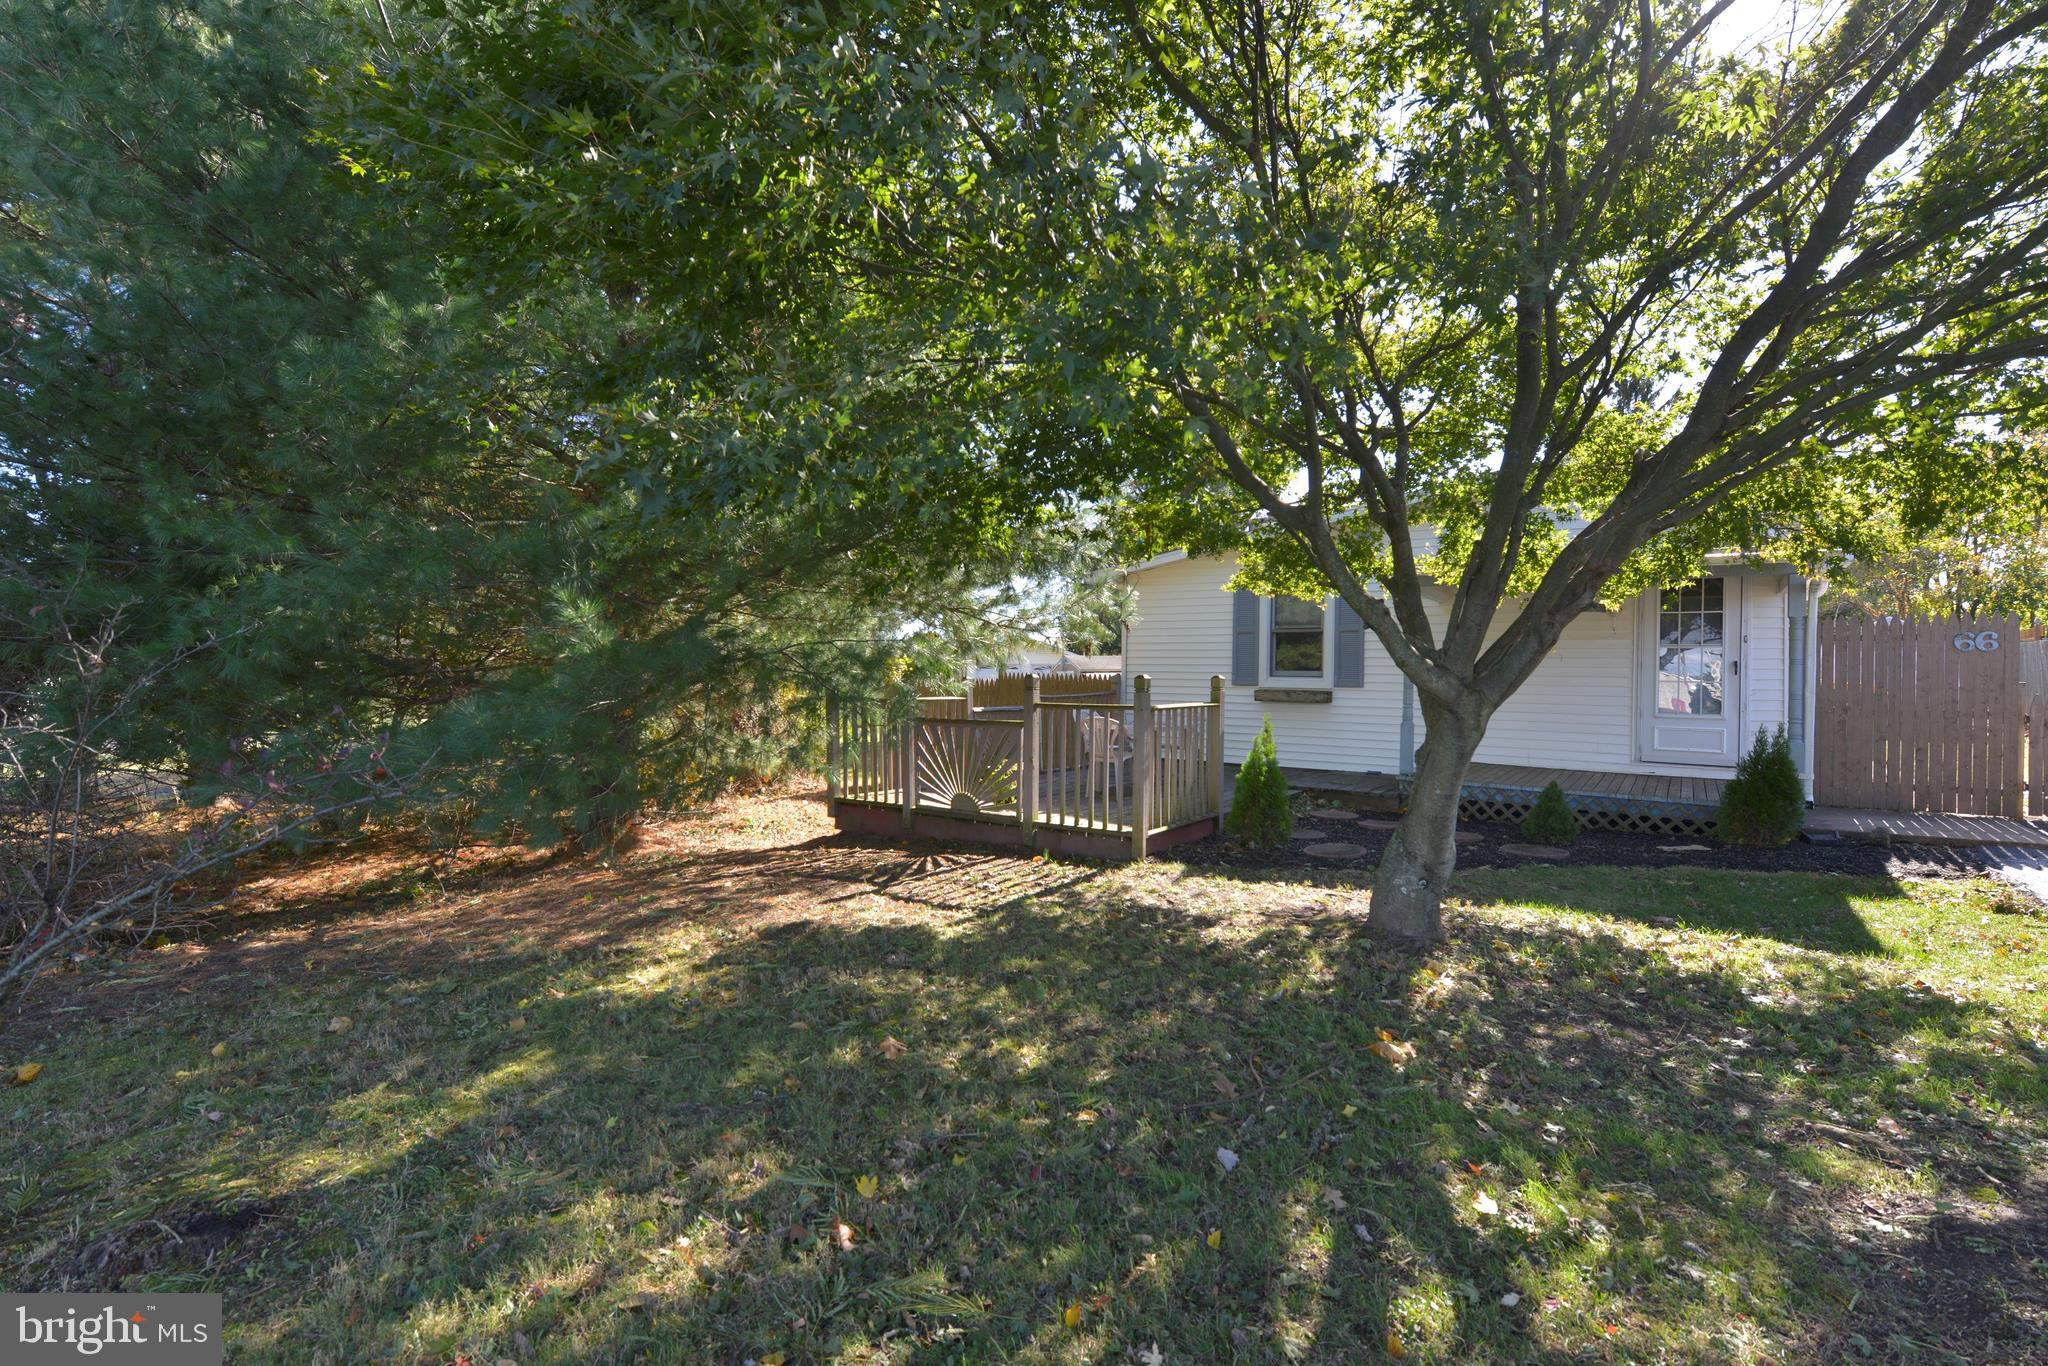 66 E 4TH STREET, RED HILL, PA 18076